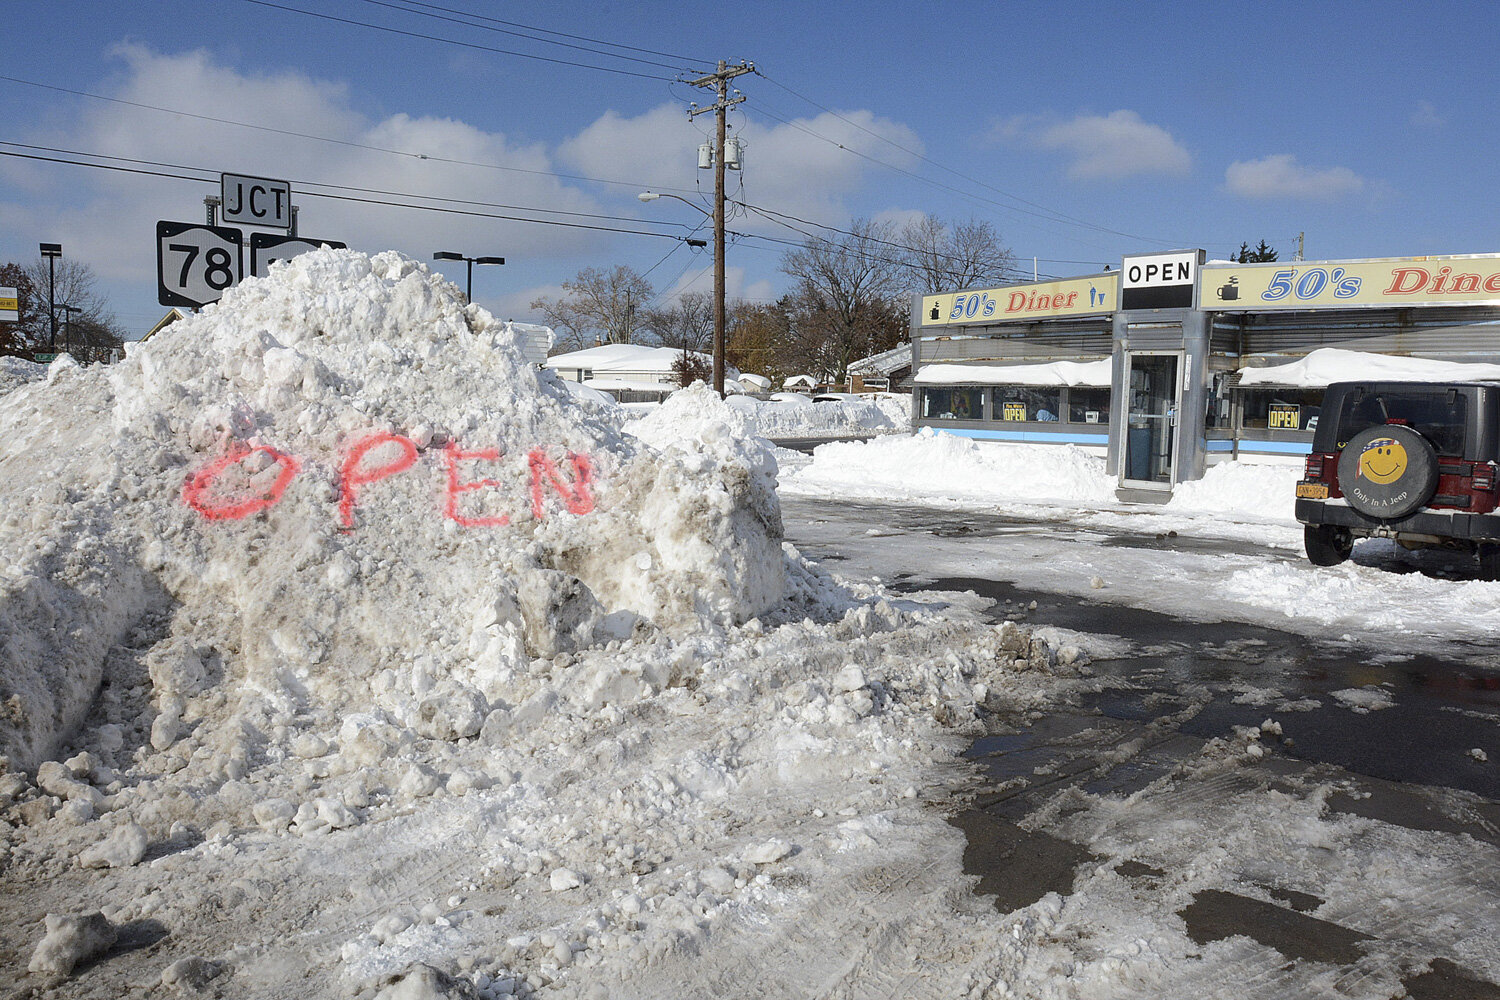 50's Diner used the mountain of snow in front of the restaurant to let people know that they were open on Friday as the first reprieve from the relentless storm that battered the area for four days.